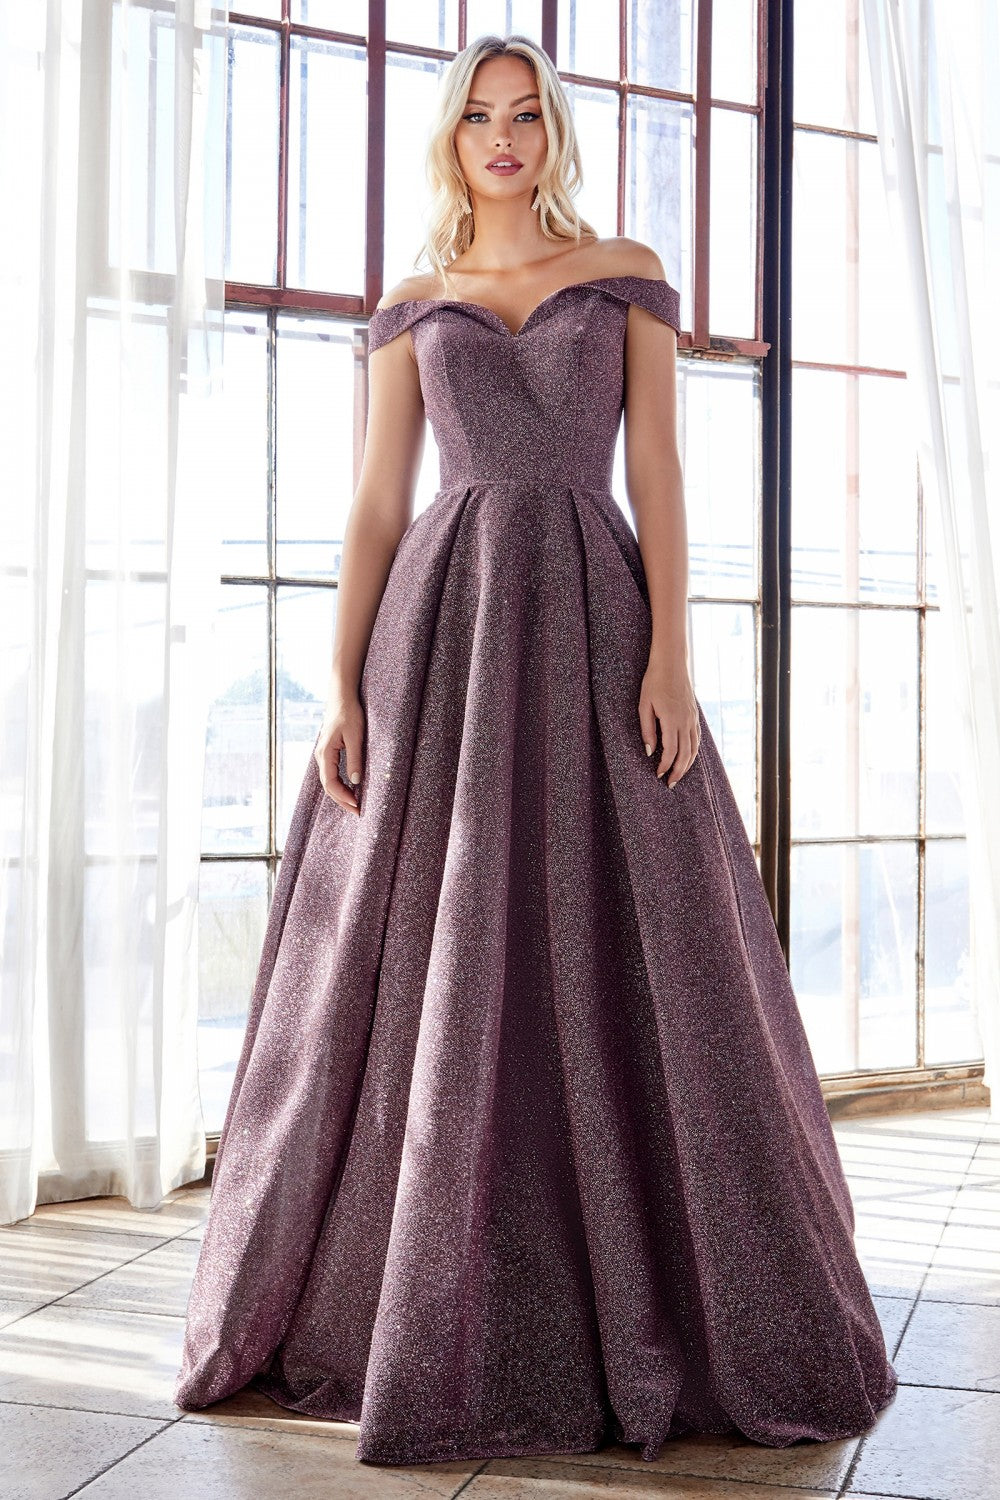 Cinderella Divine Chart I CD CB056 - Off the shoulder glitter gown with sweetheart neckline & pocket - Diggz Prom